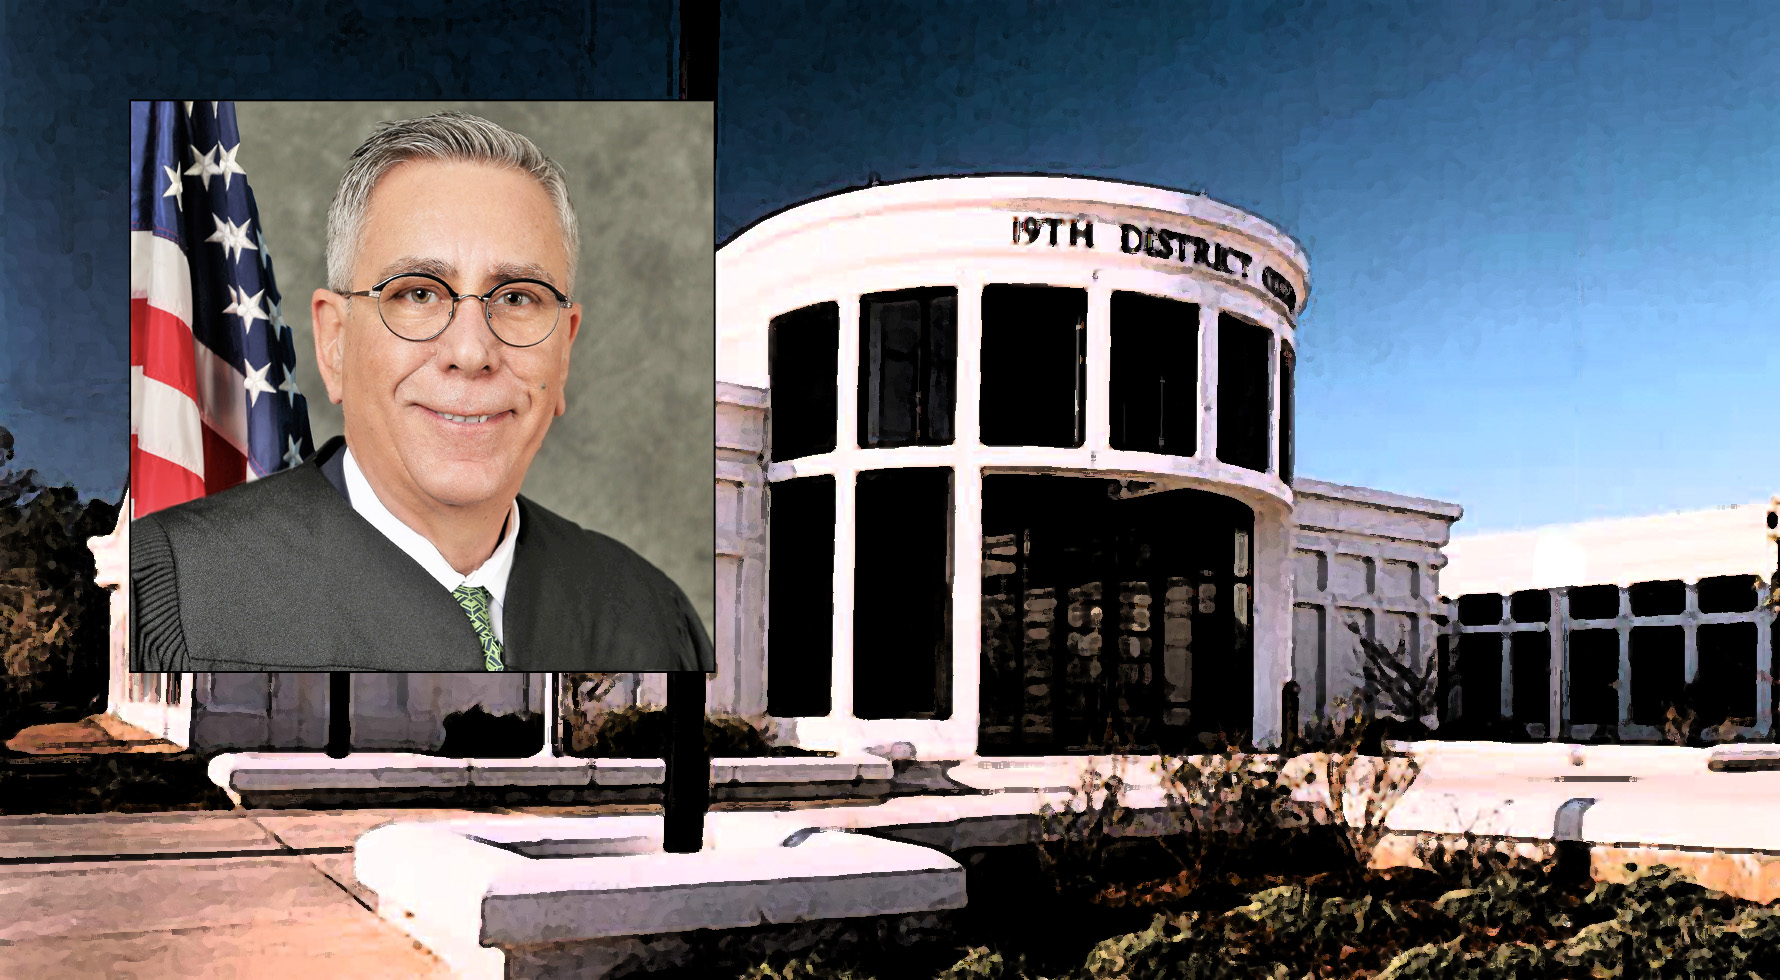 Judge Hunt and illustration of 19th District Court building